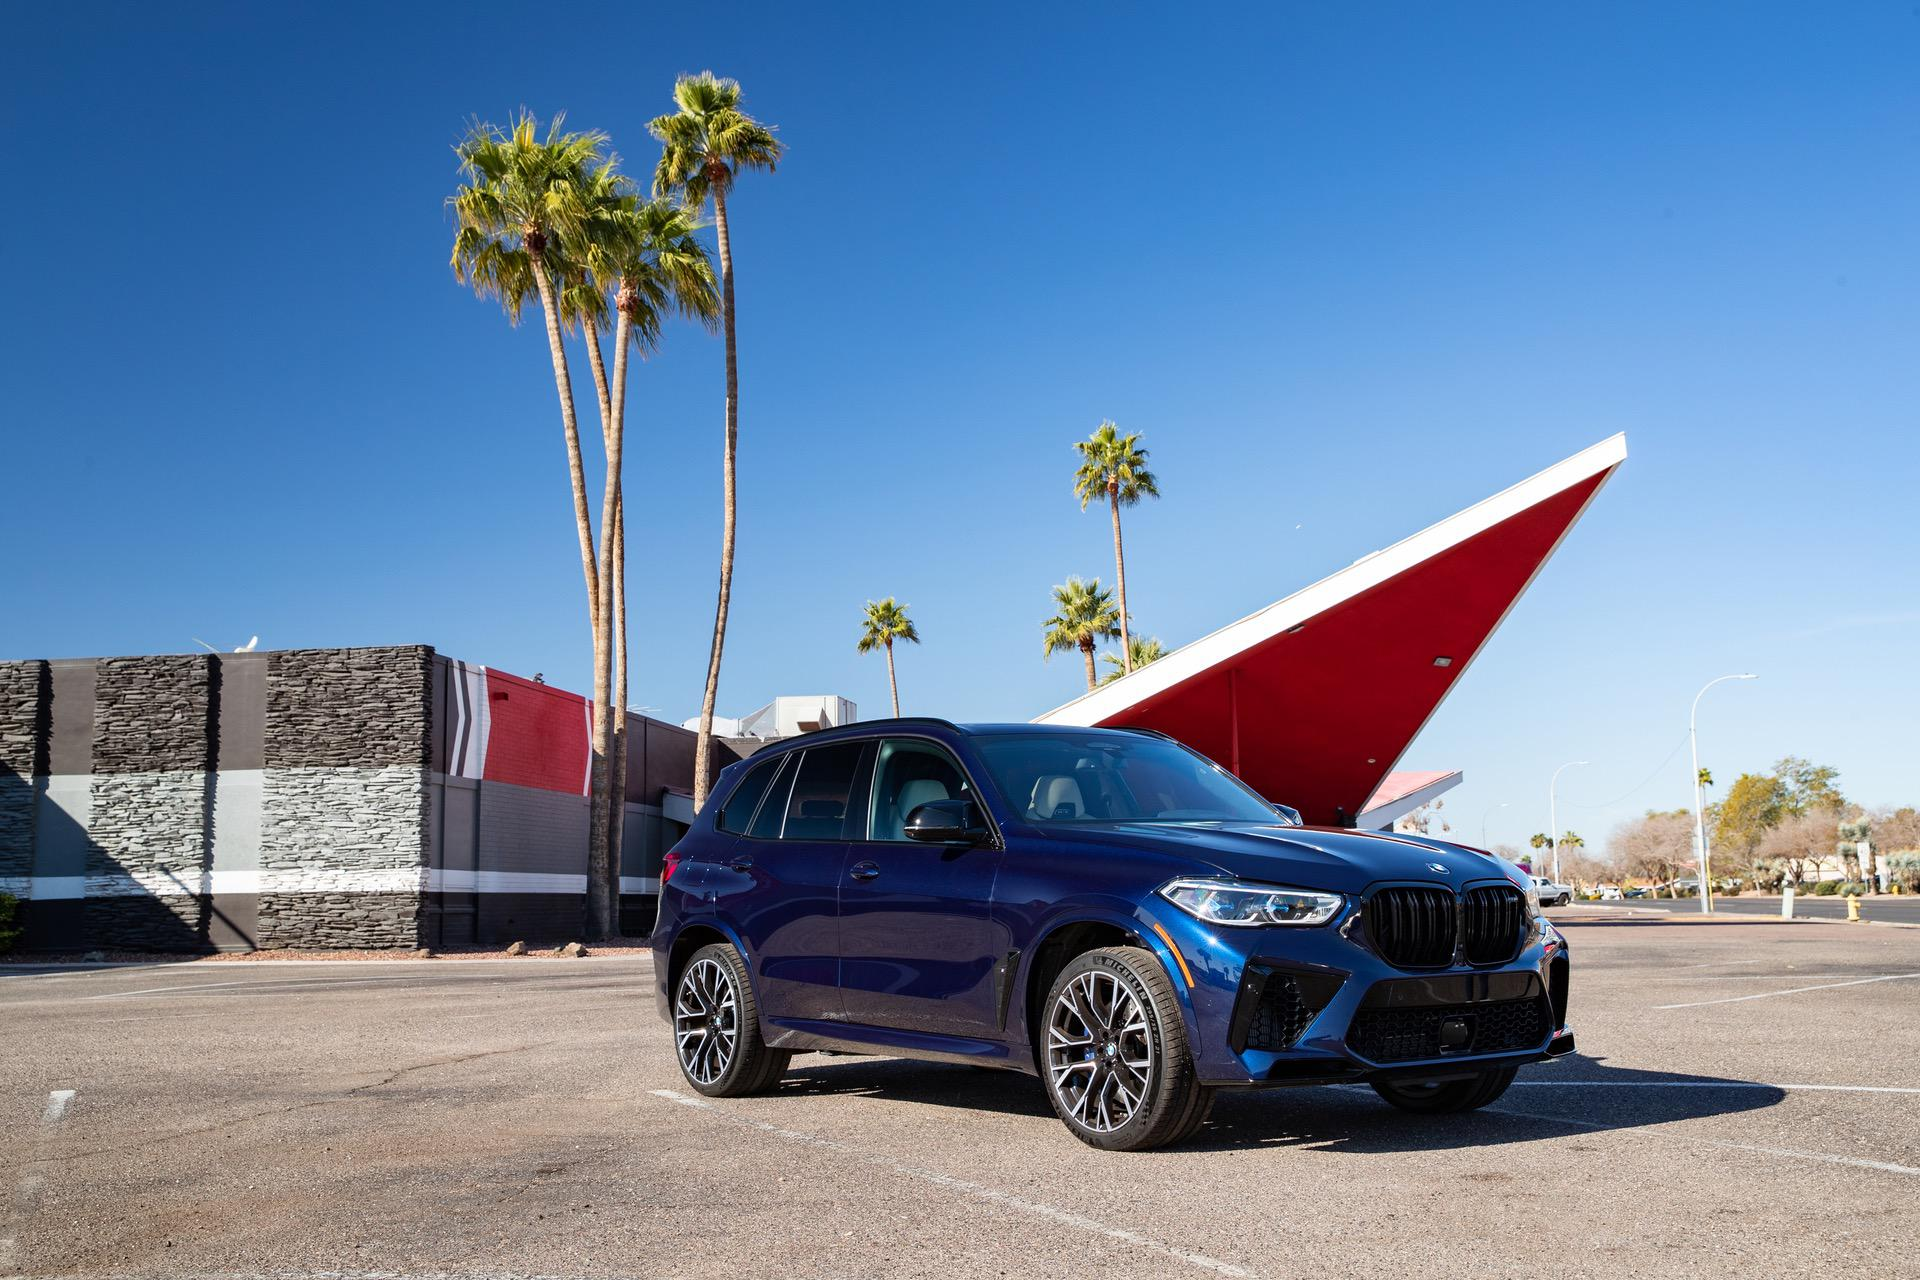 Video: BMW X5 M Review dubs it a 'monster' on wheels